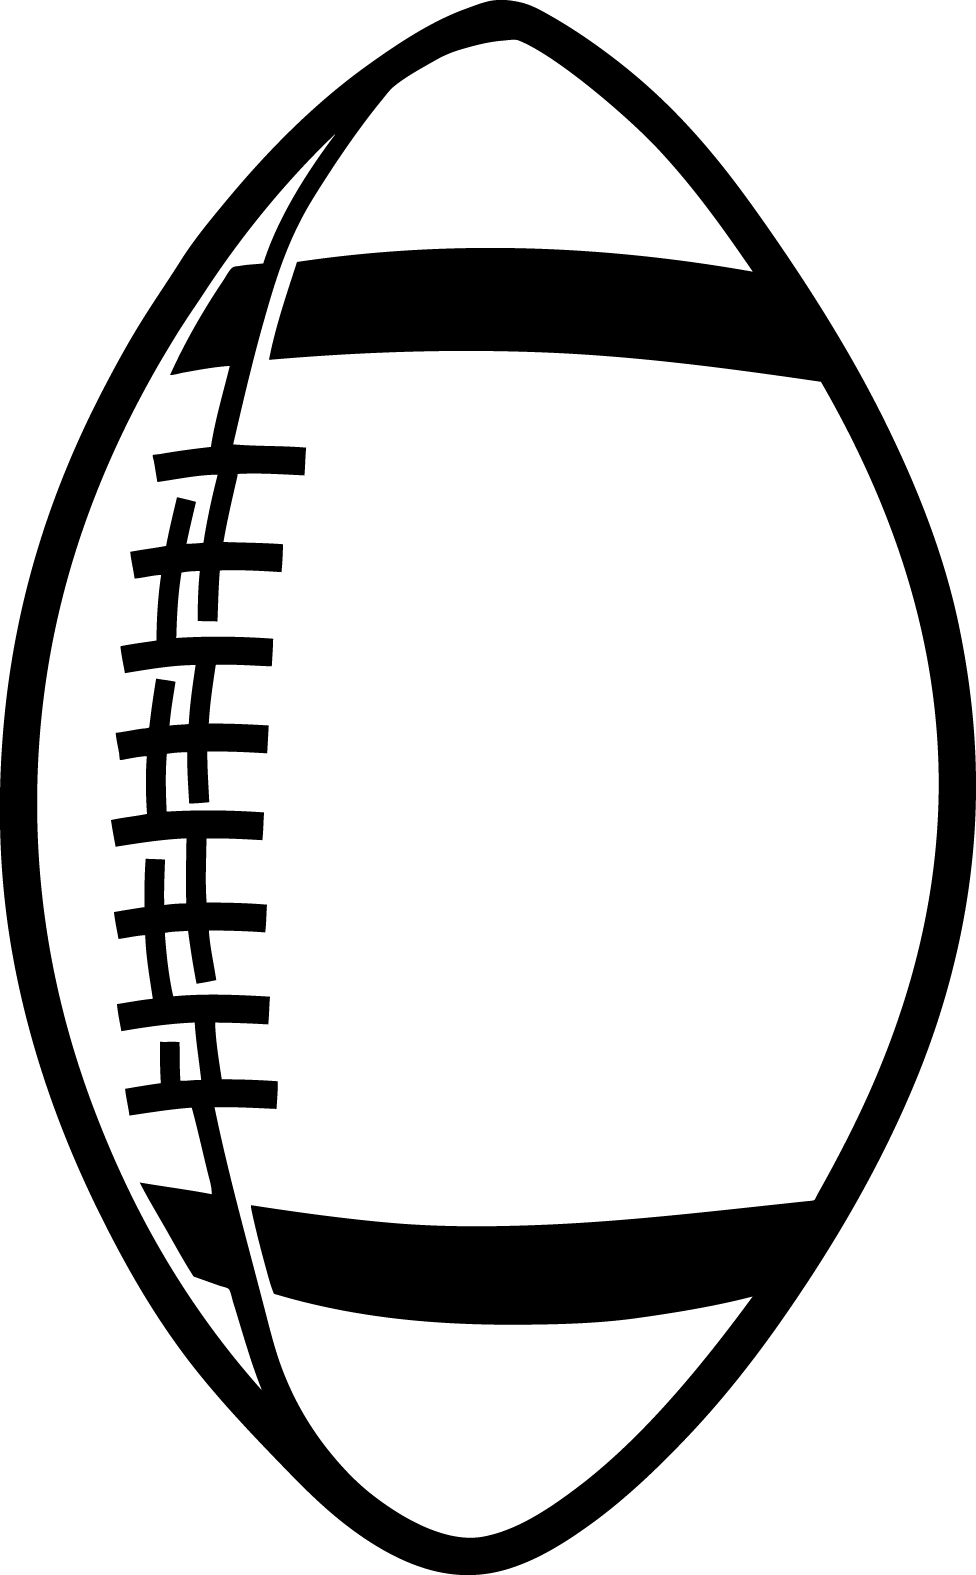 Free football player clipart graphic free stock Dragonfly Outline Clipart | Clipart Panda - Free Clipart Images ... graphic free stock